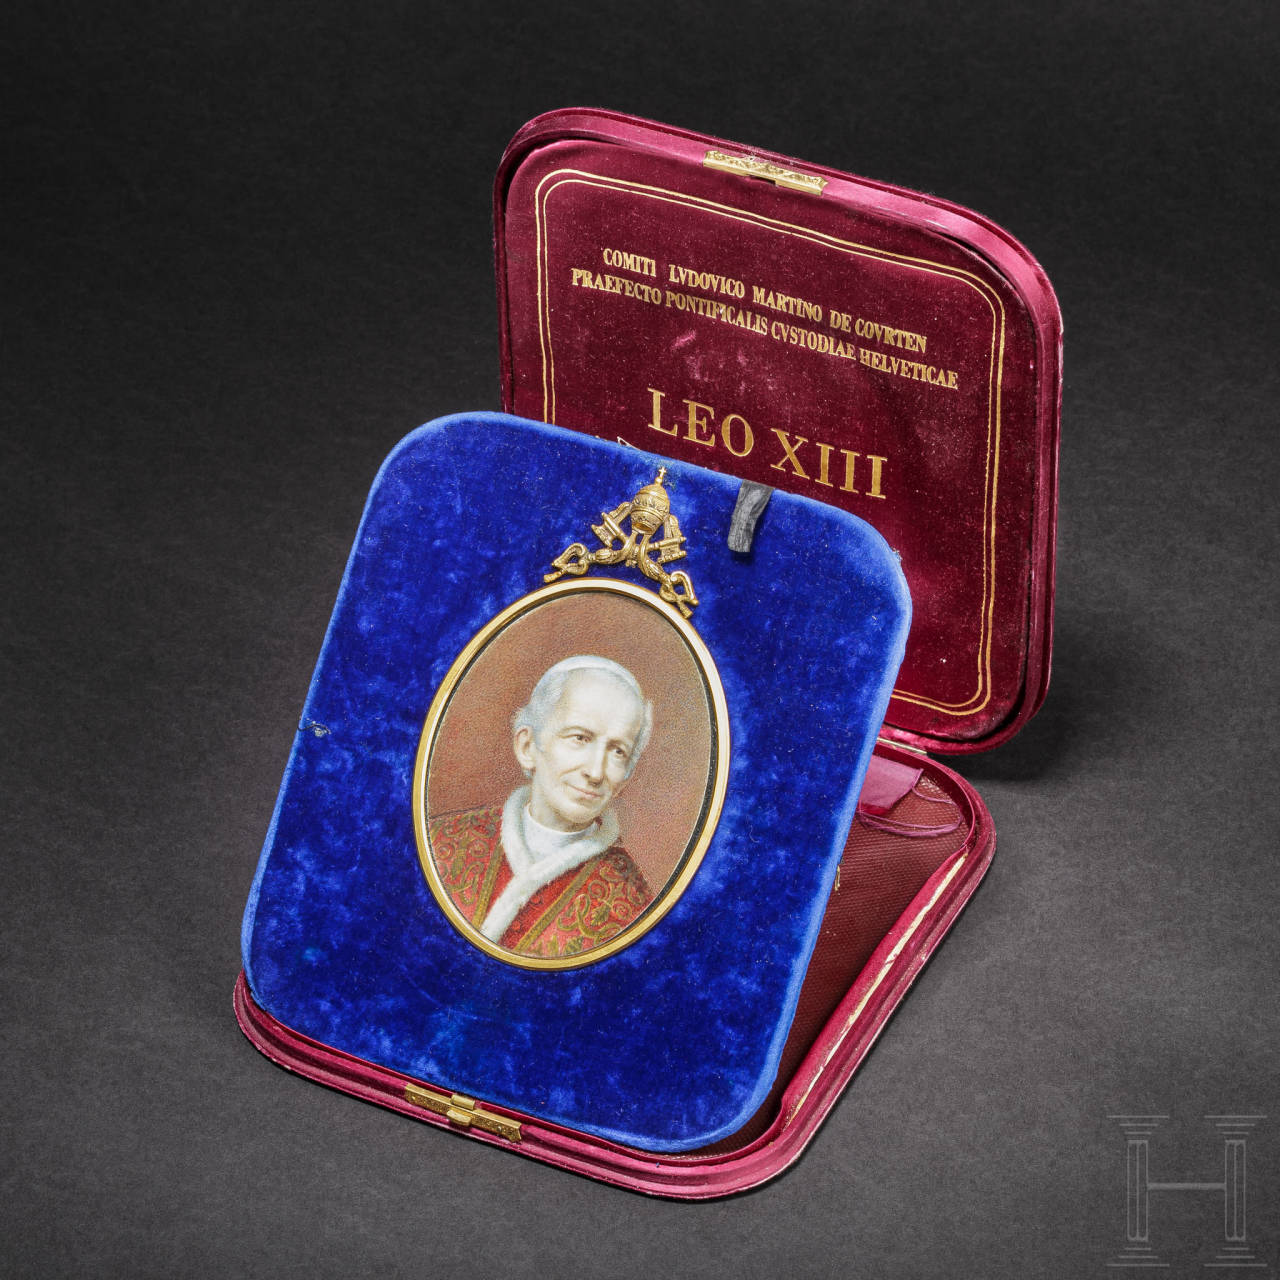 Pope Leo XIII (1810 – 1903) – a gift to the commander of the Swiss Guard